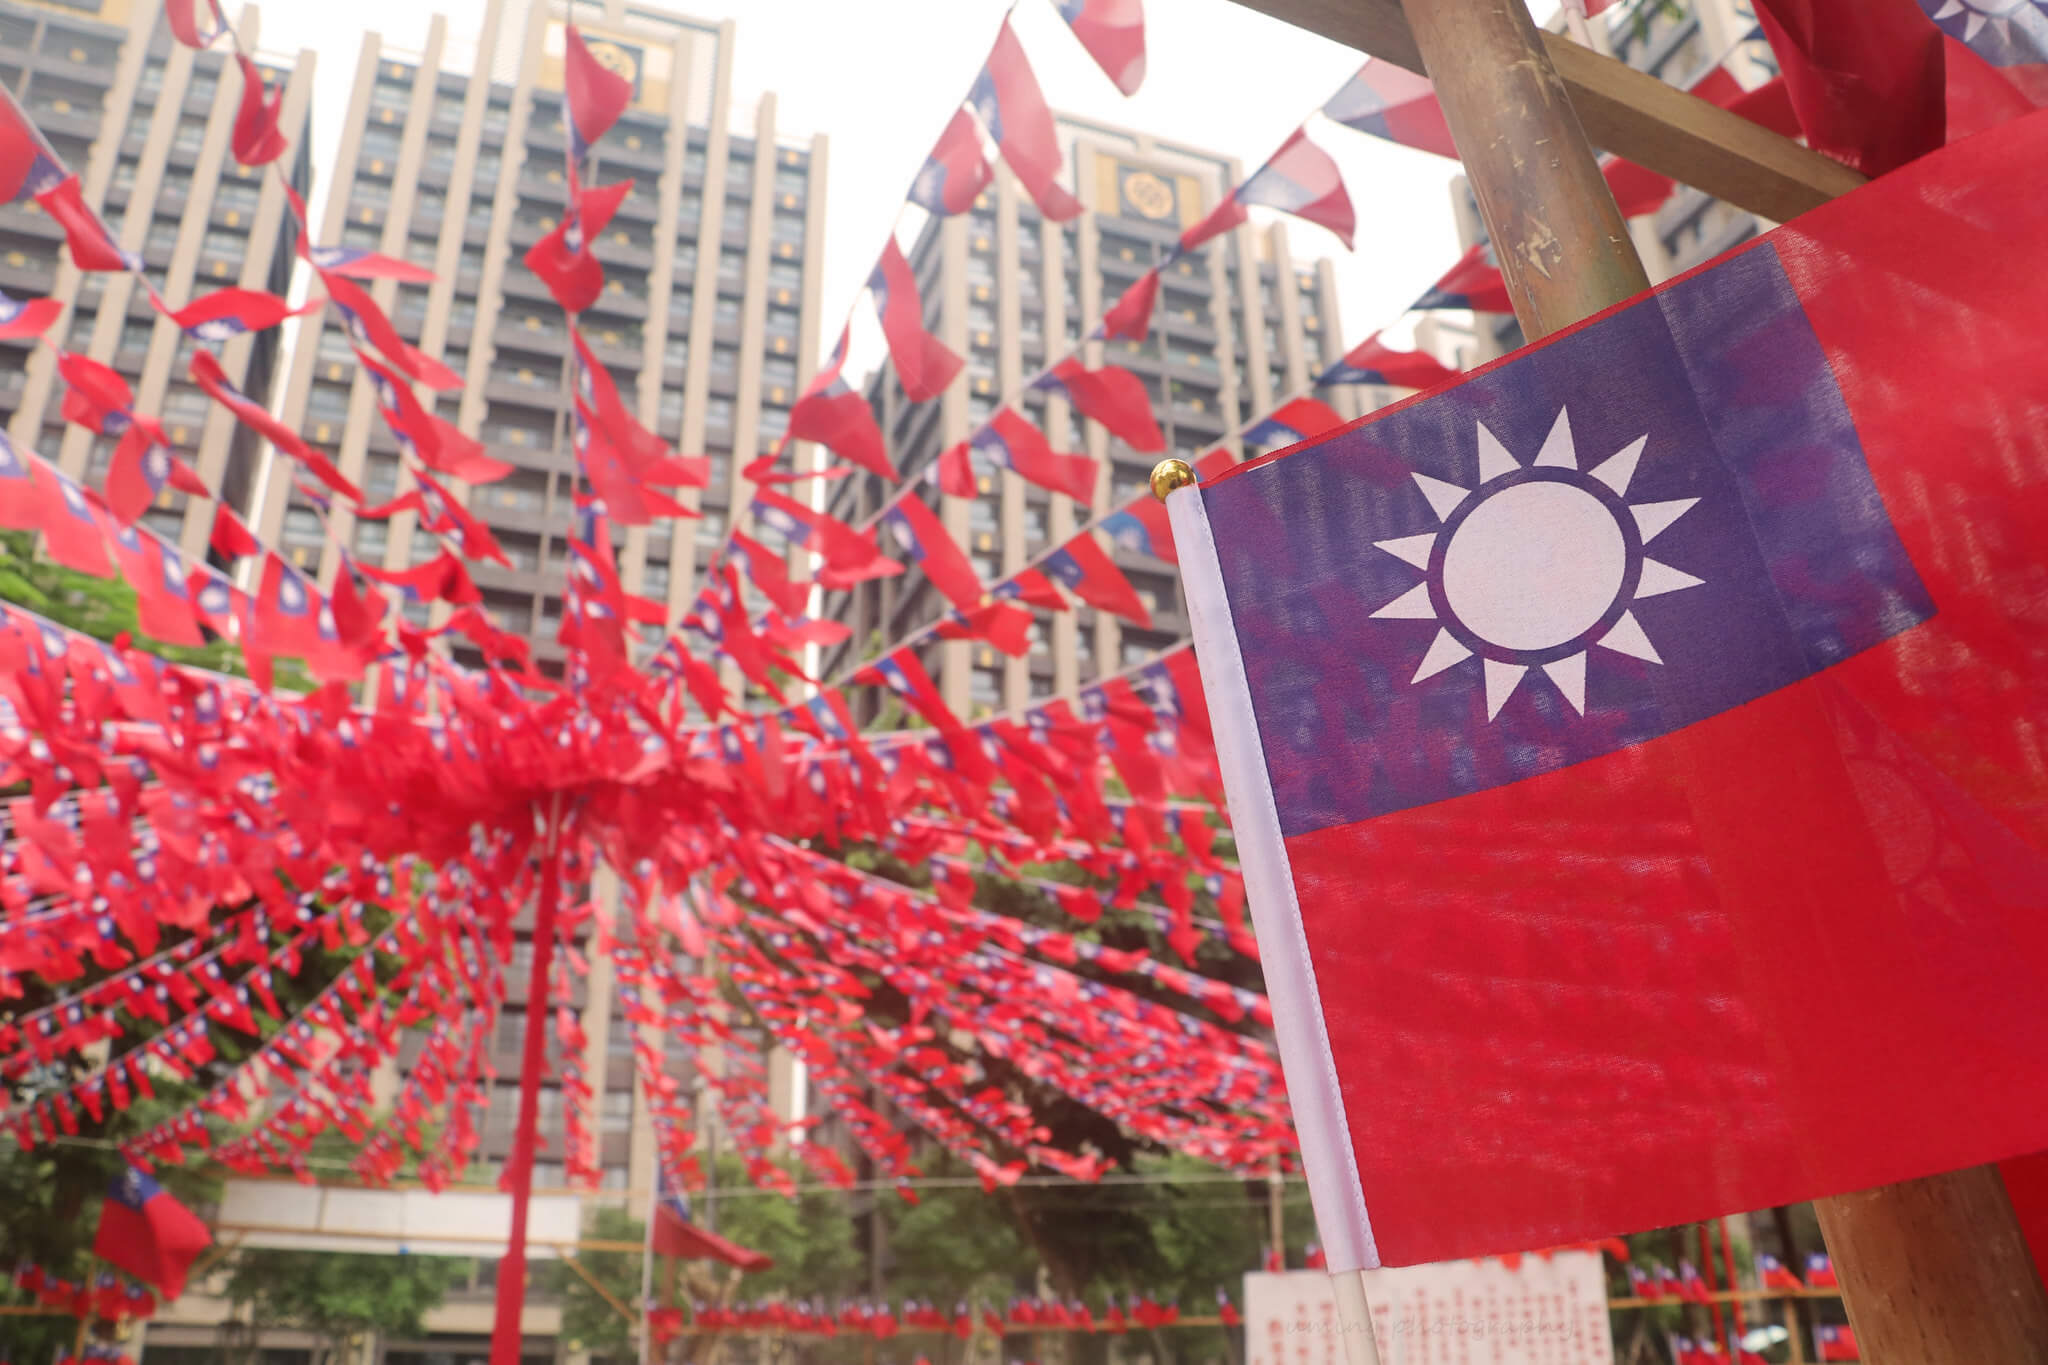 Holmes - The flag of the Republic of China, commonly referred to as the Flag of Taiwan. Uming Photography - Flickr